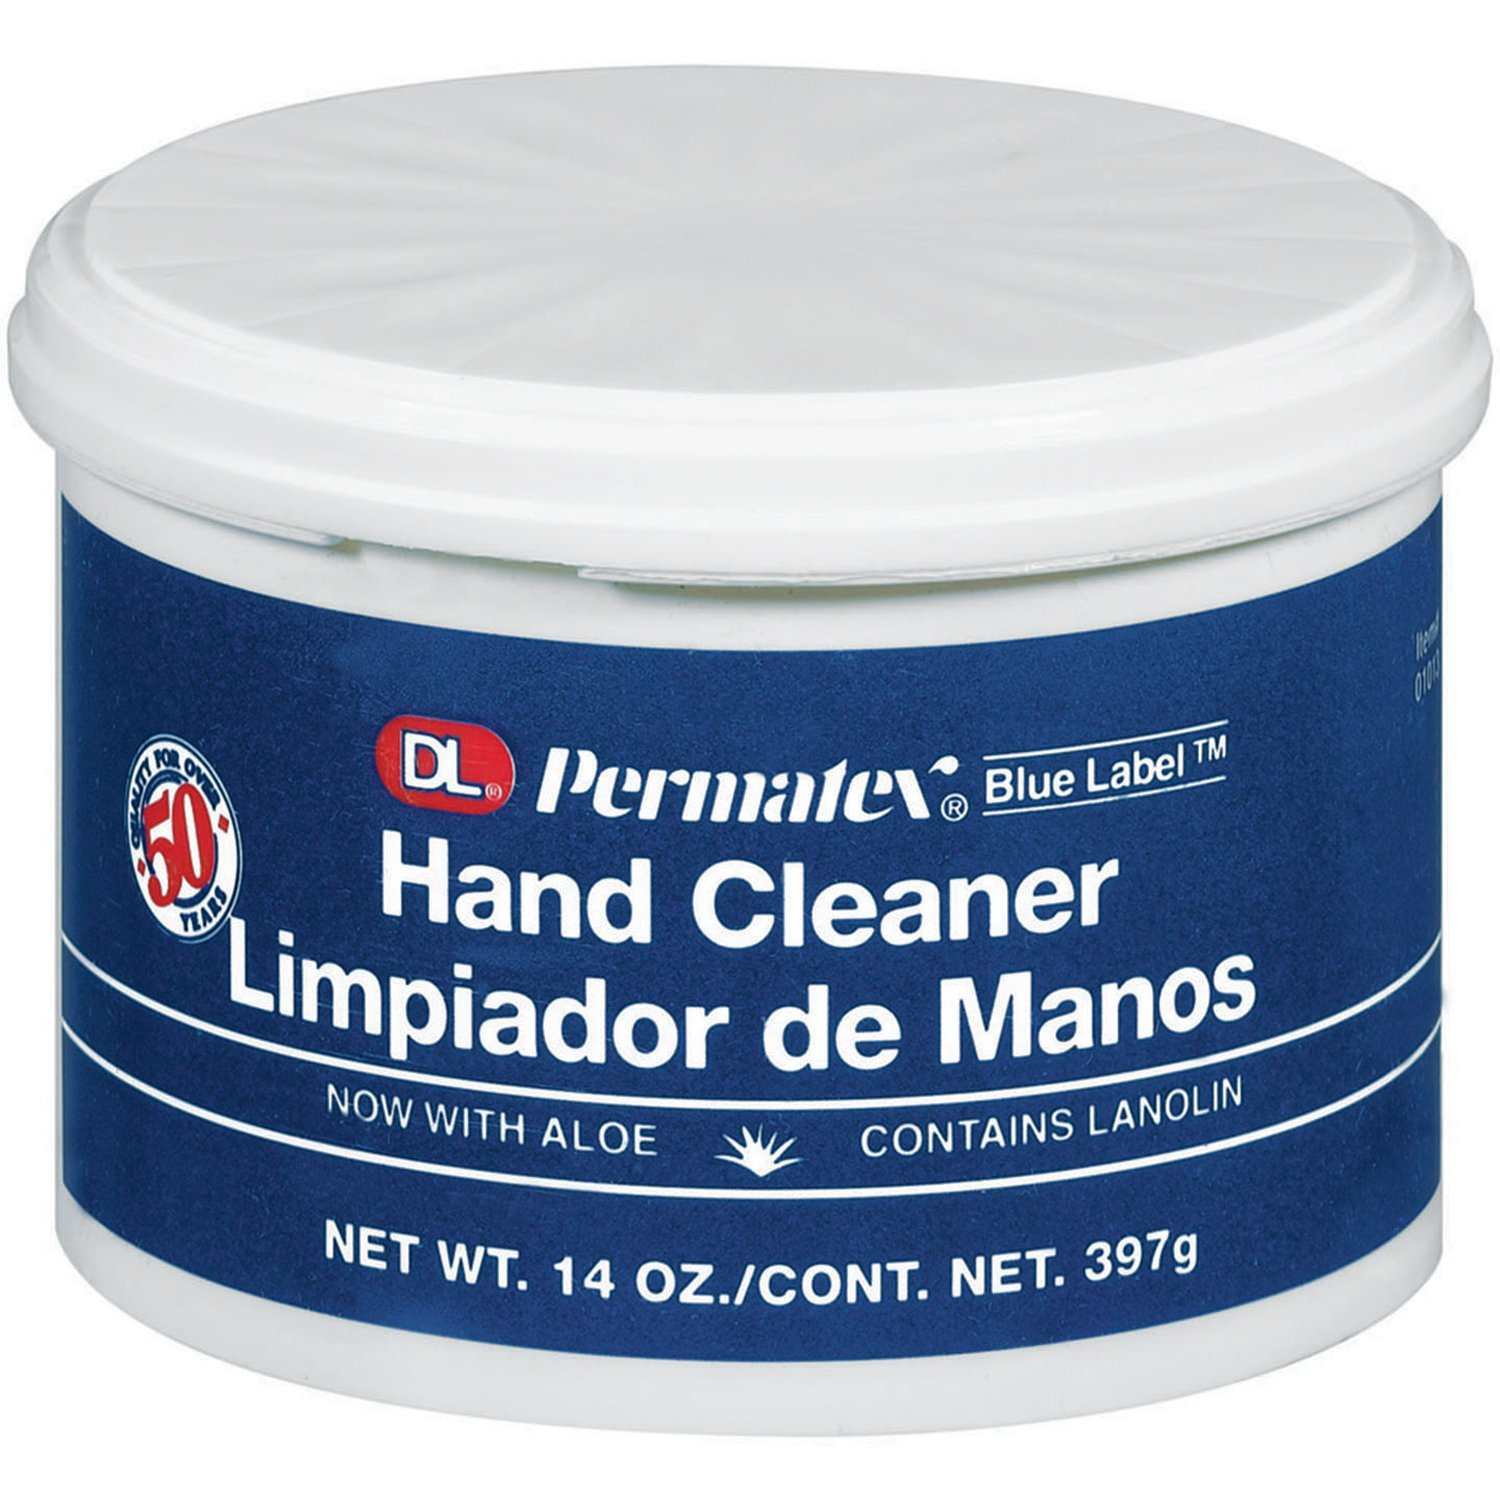 Permatex 01406-6PK DL Blue Label Cream Hand Cleaner - 4.5 lbs., (Pack of 6) Rain-X